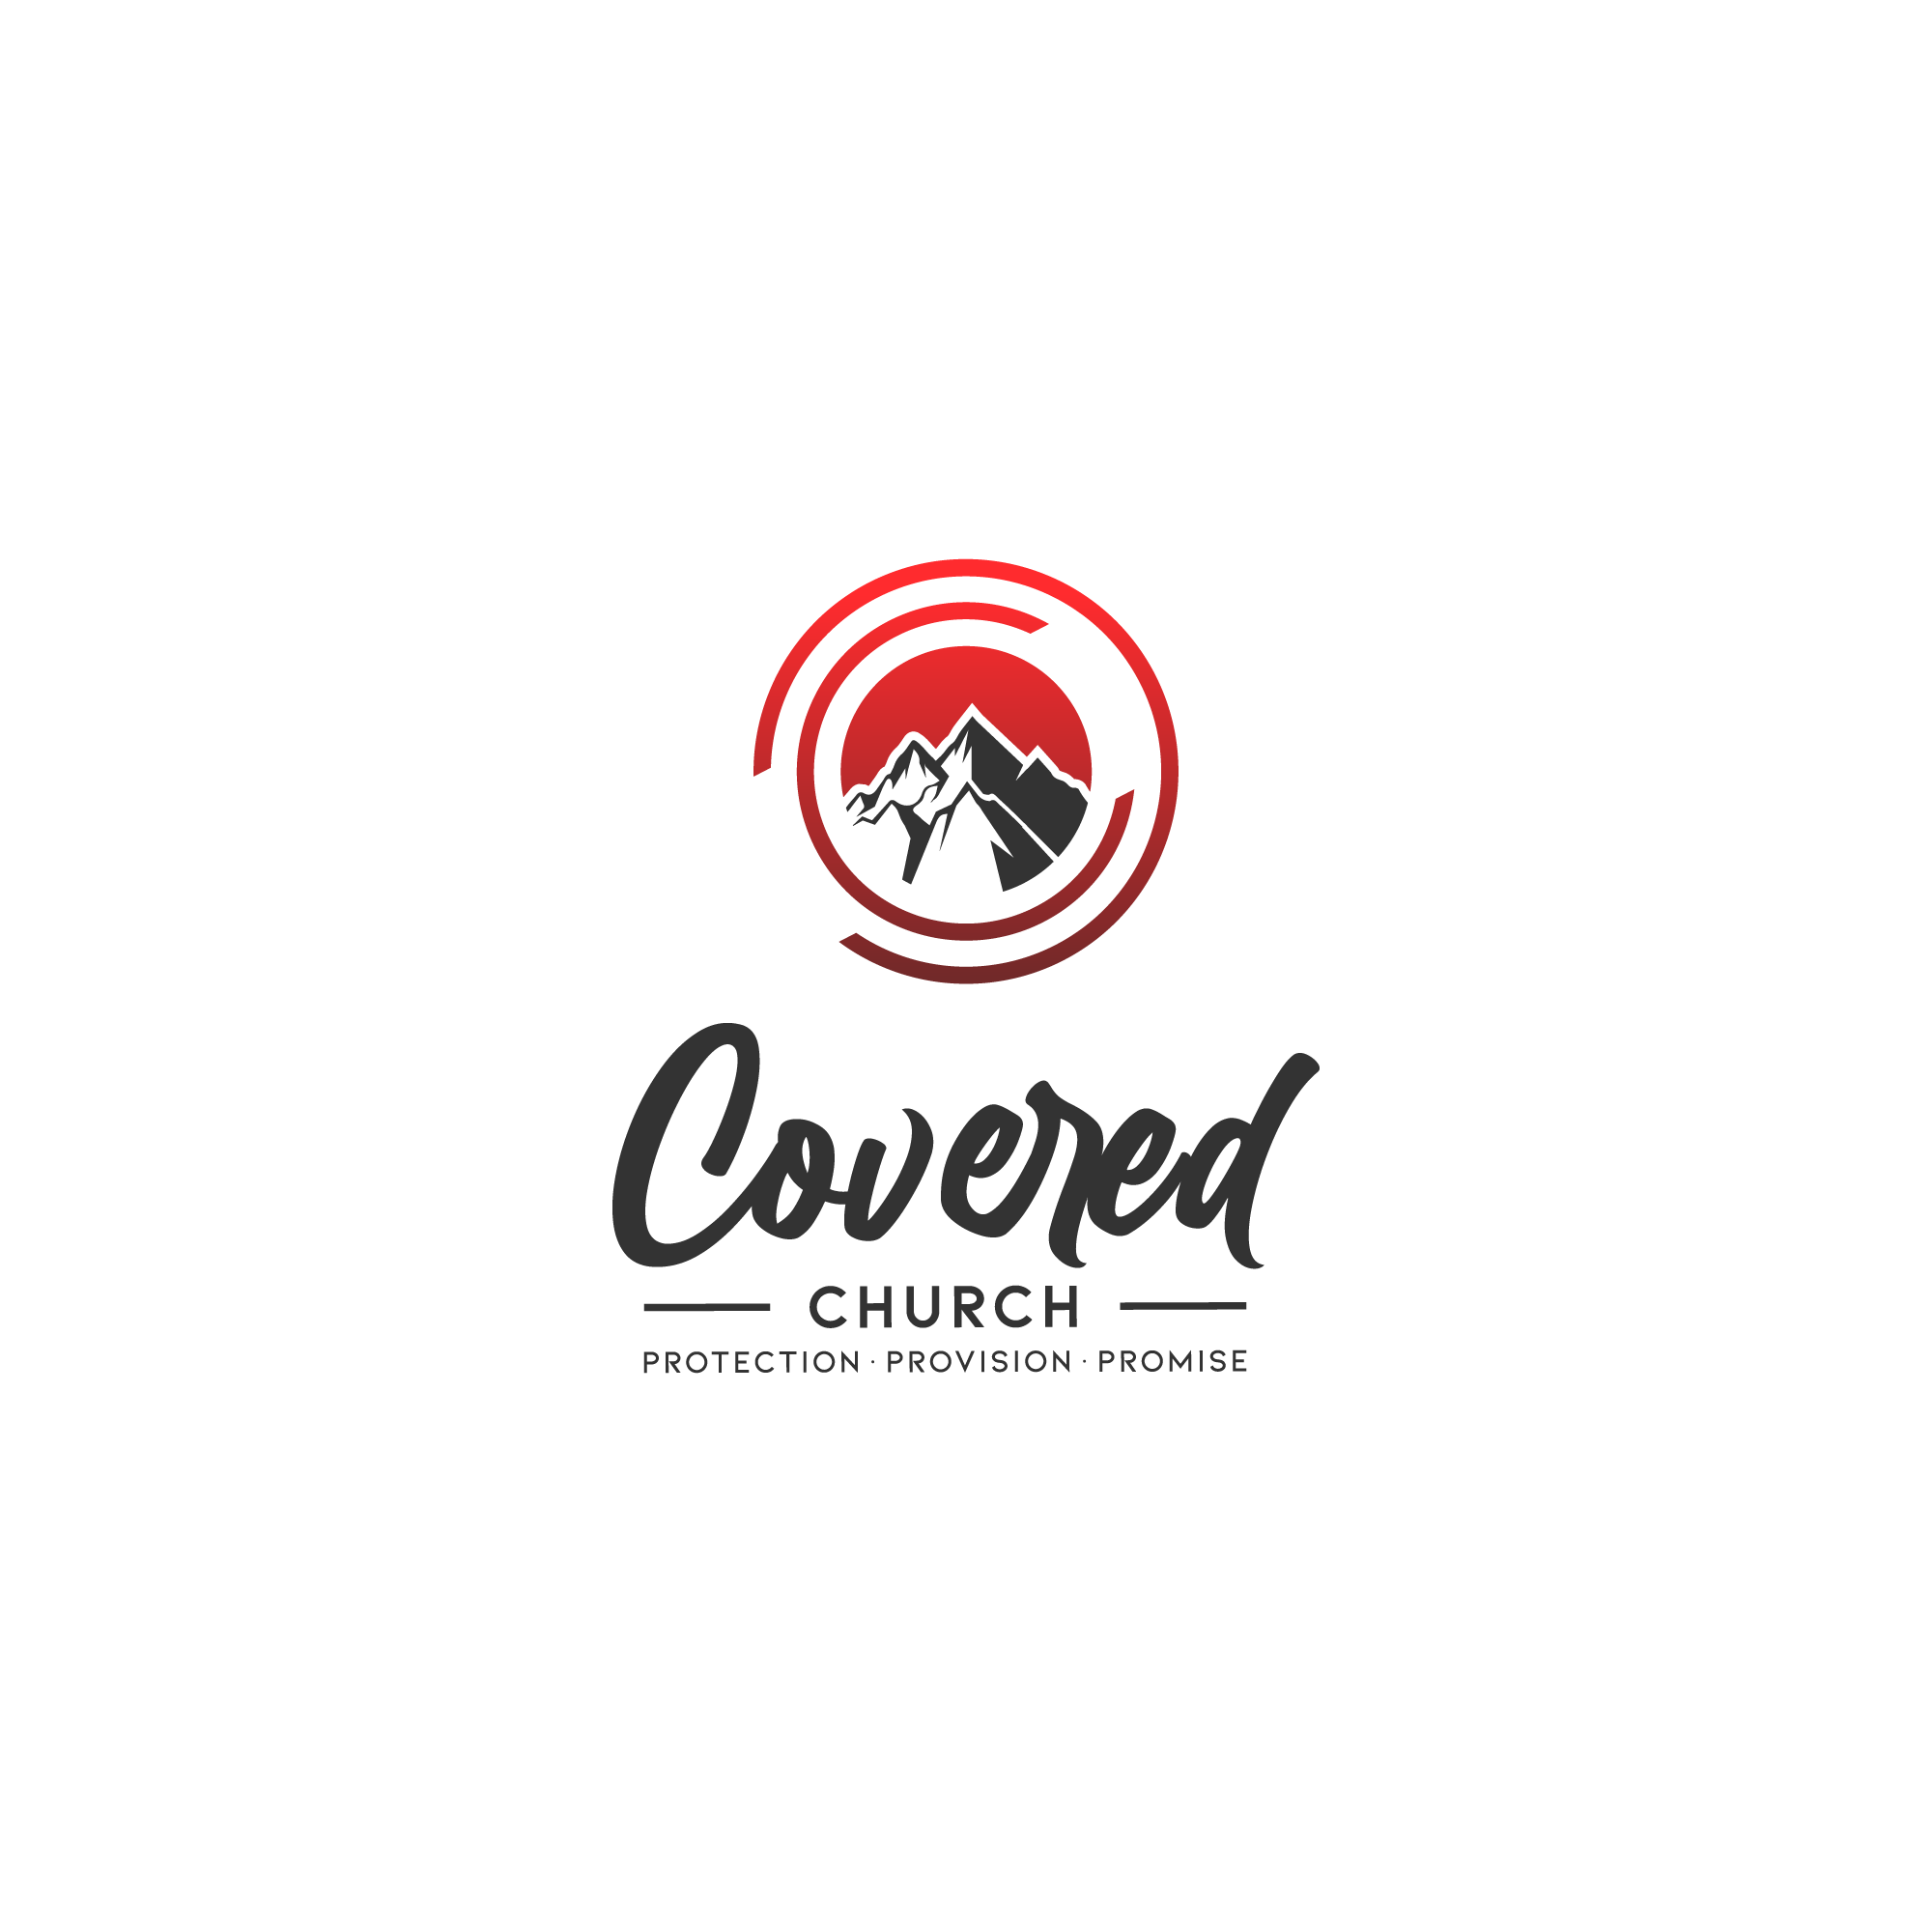 Revision to Covered Church logo